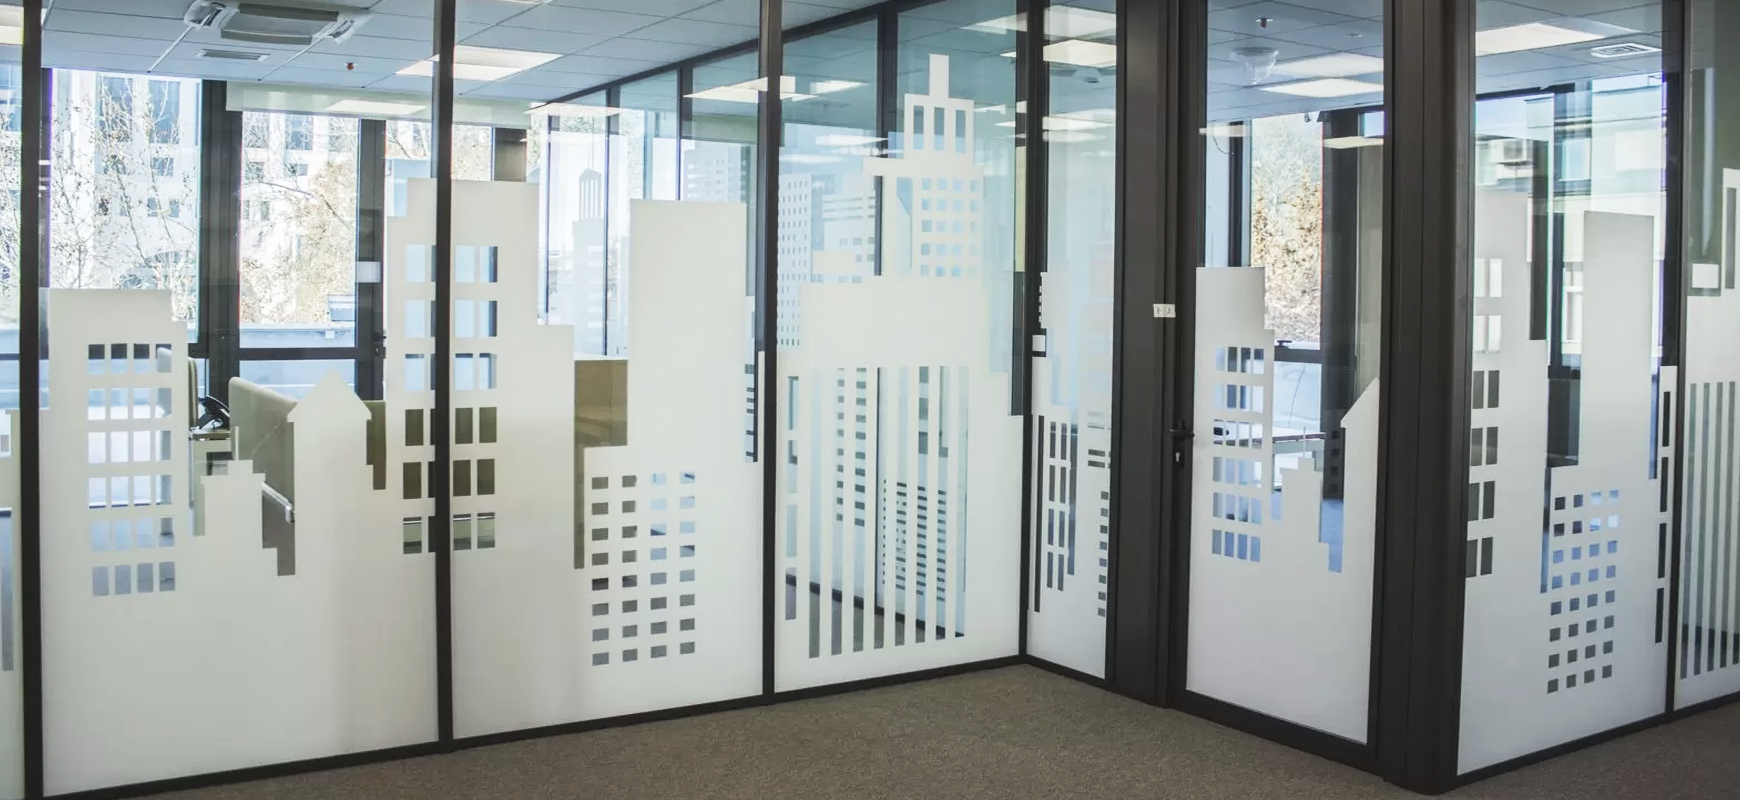 decorative office signs displaying building graphics made of frosted vinyl for window design